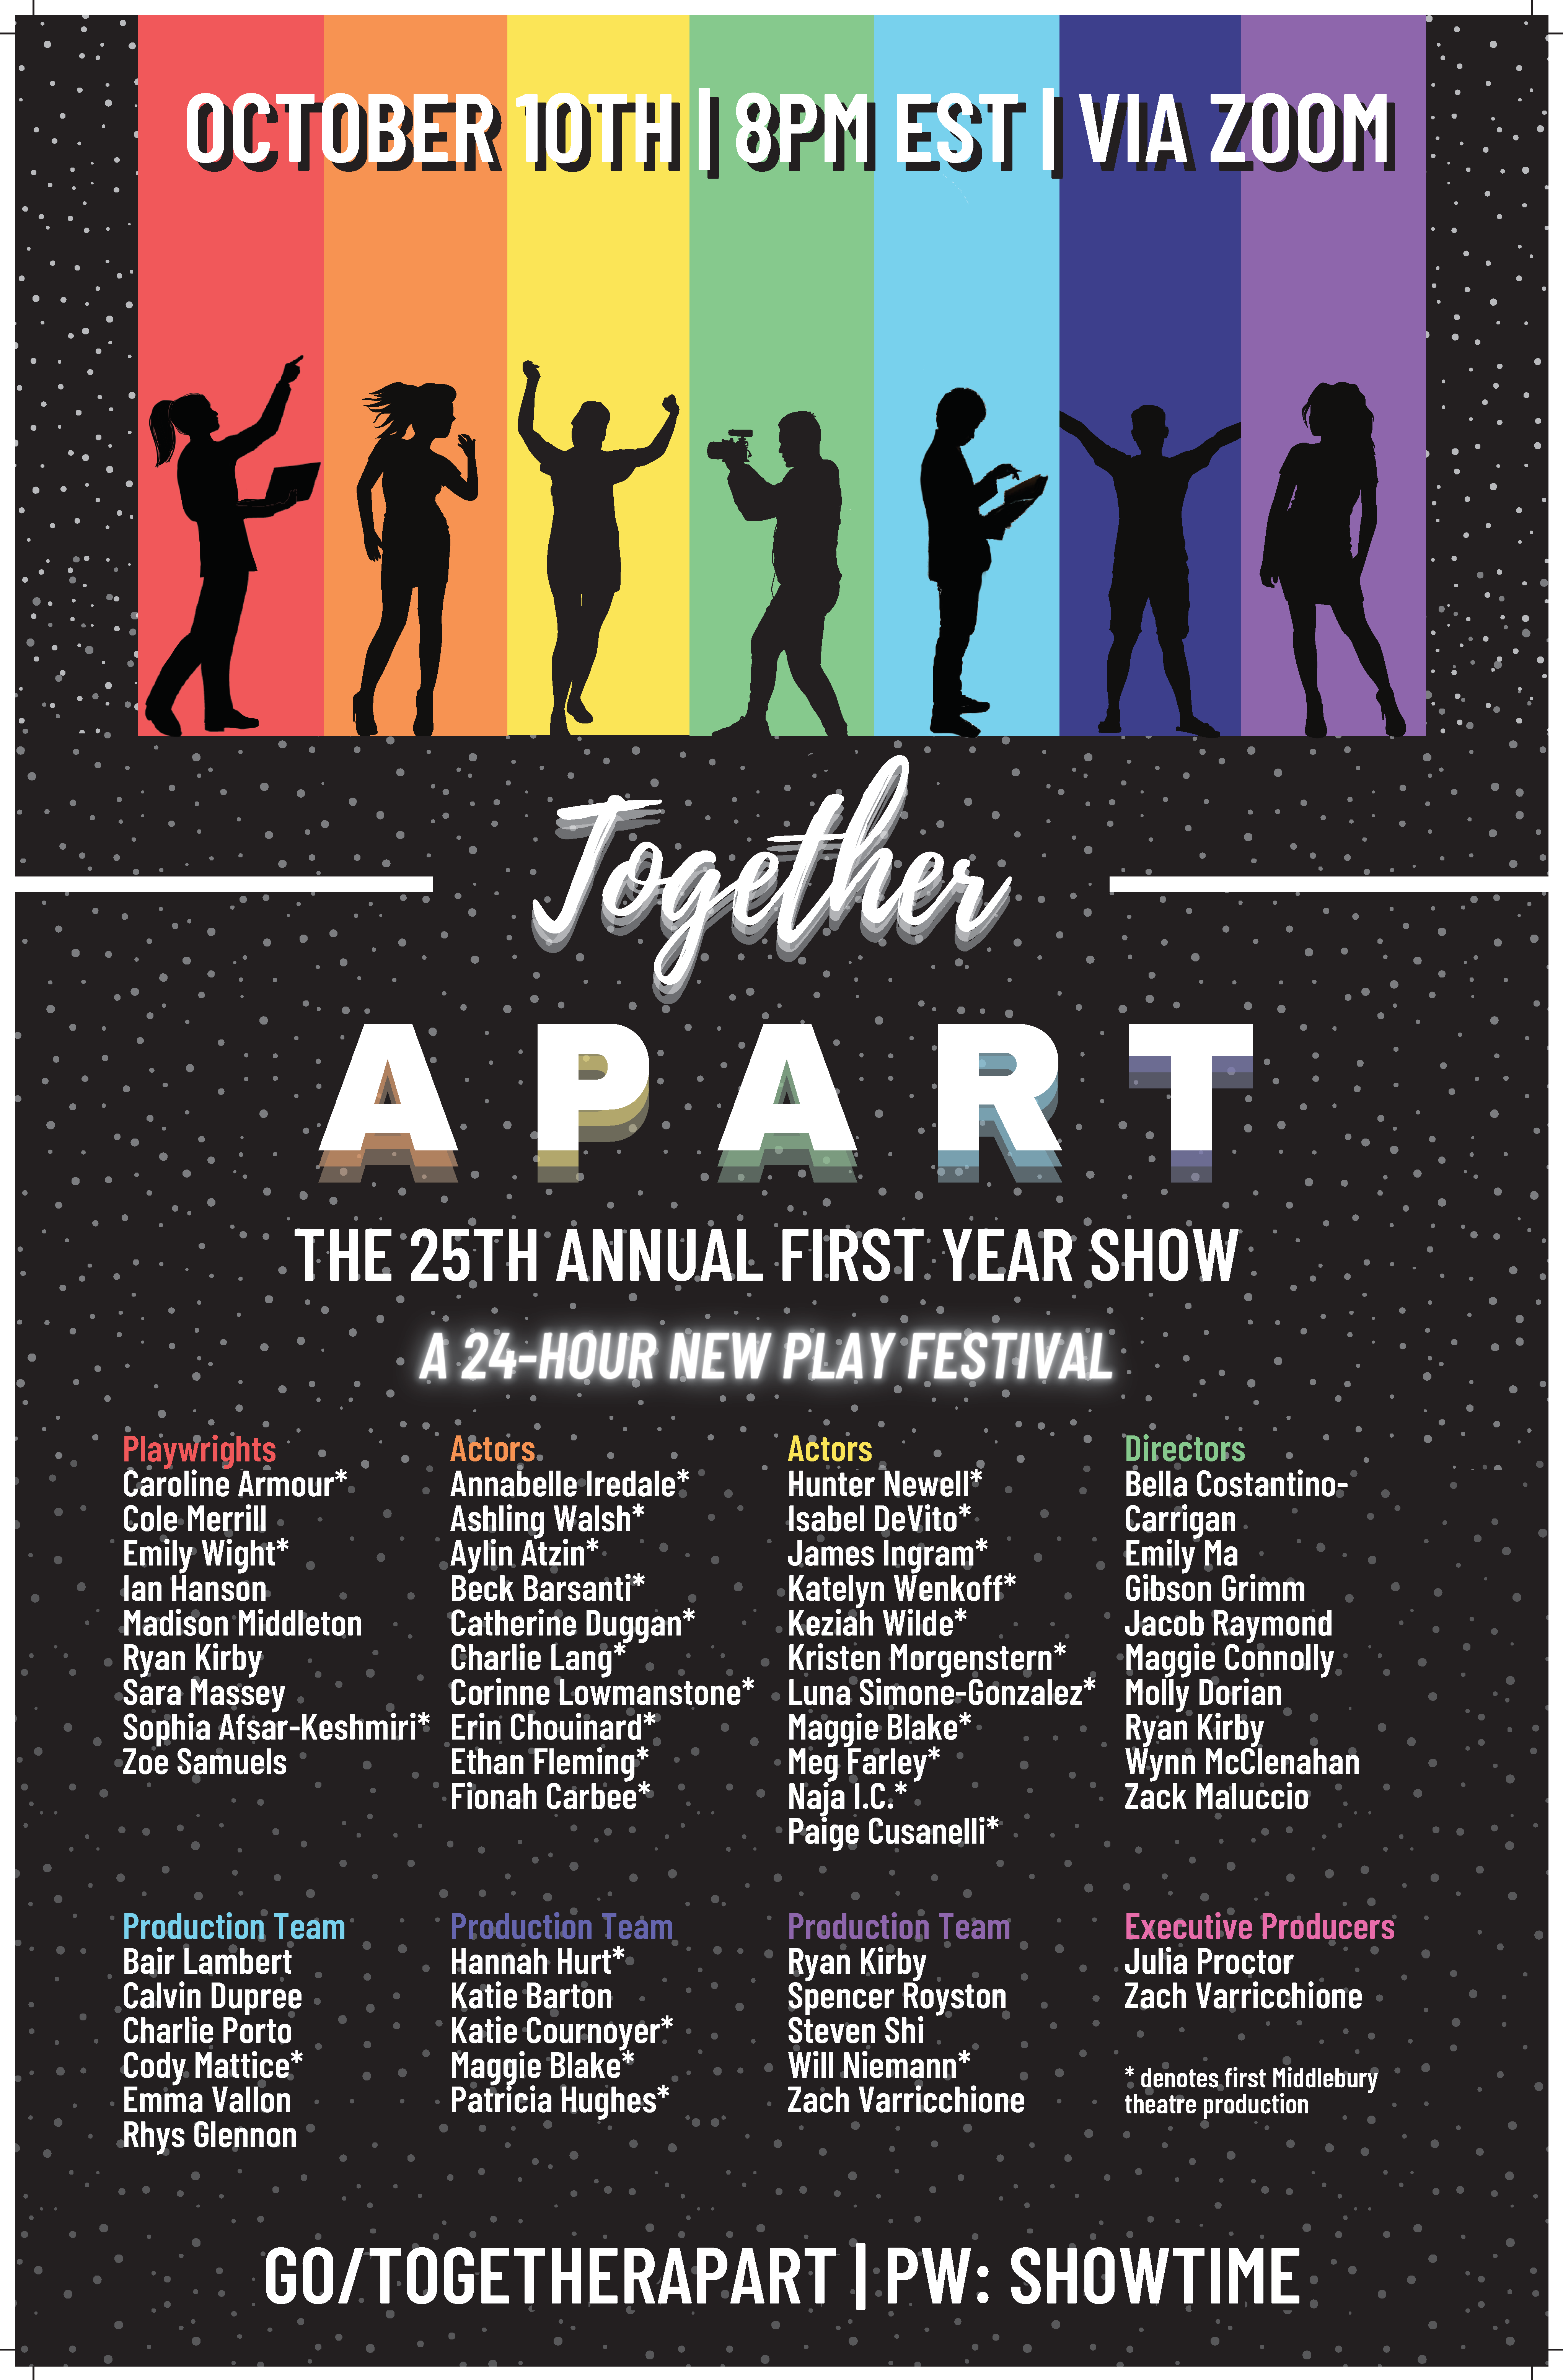 First Year Show Poster